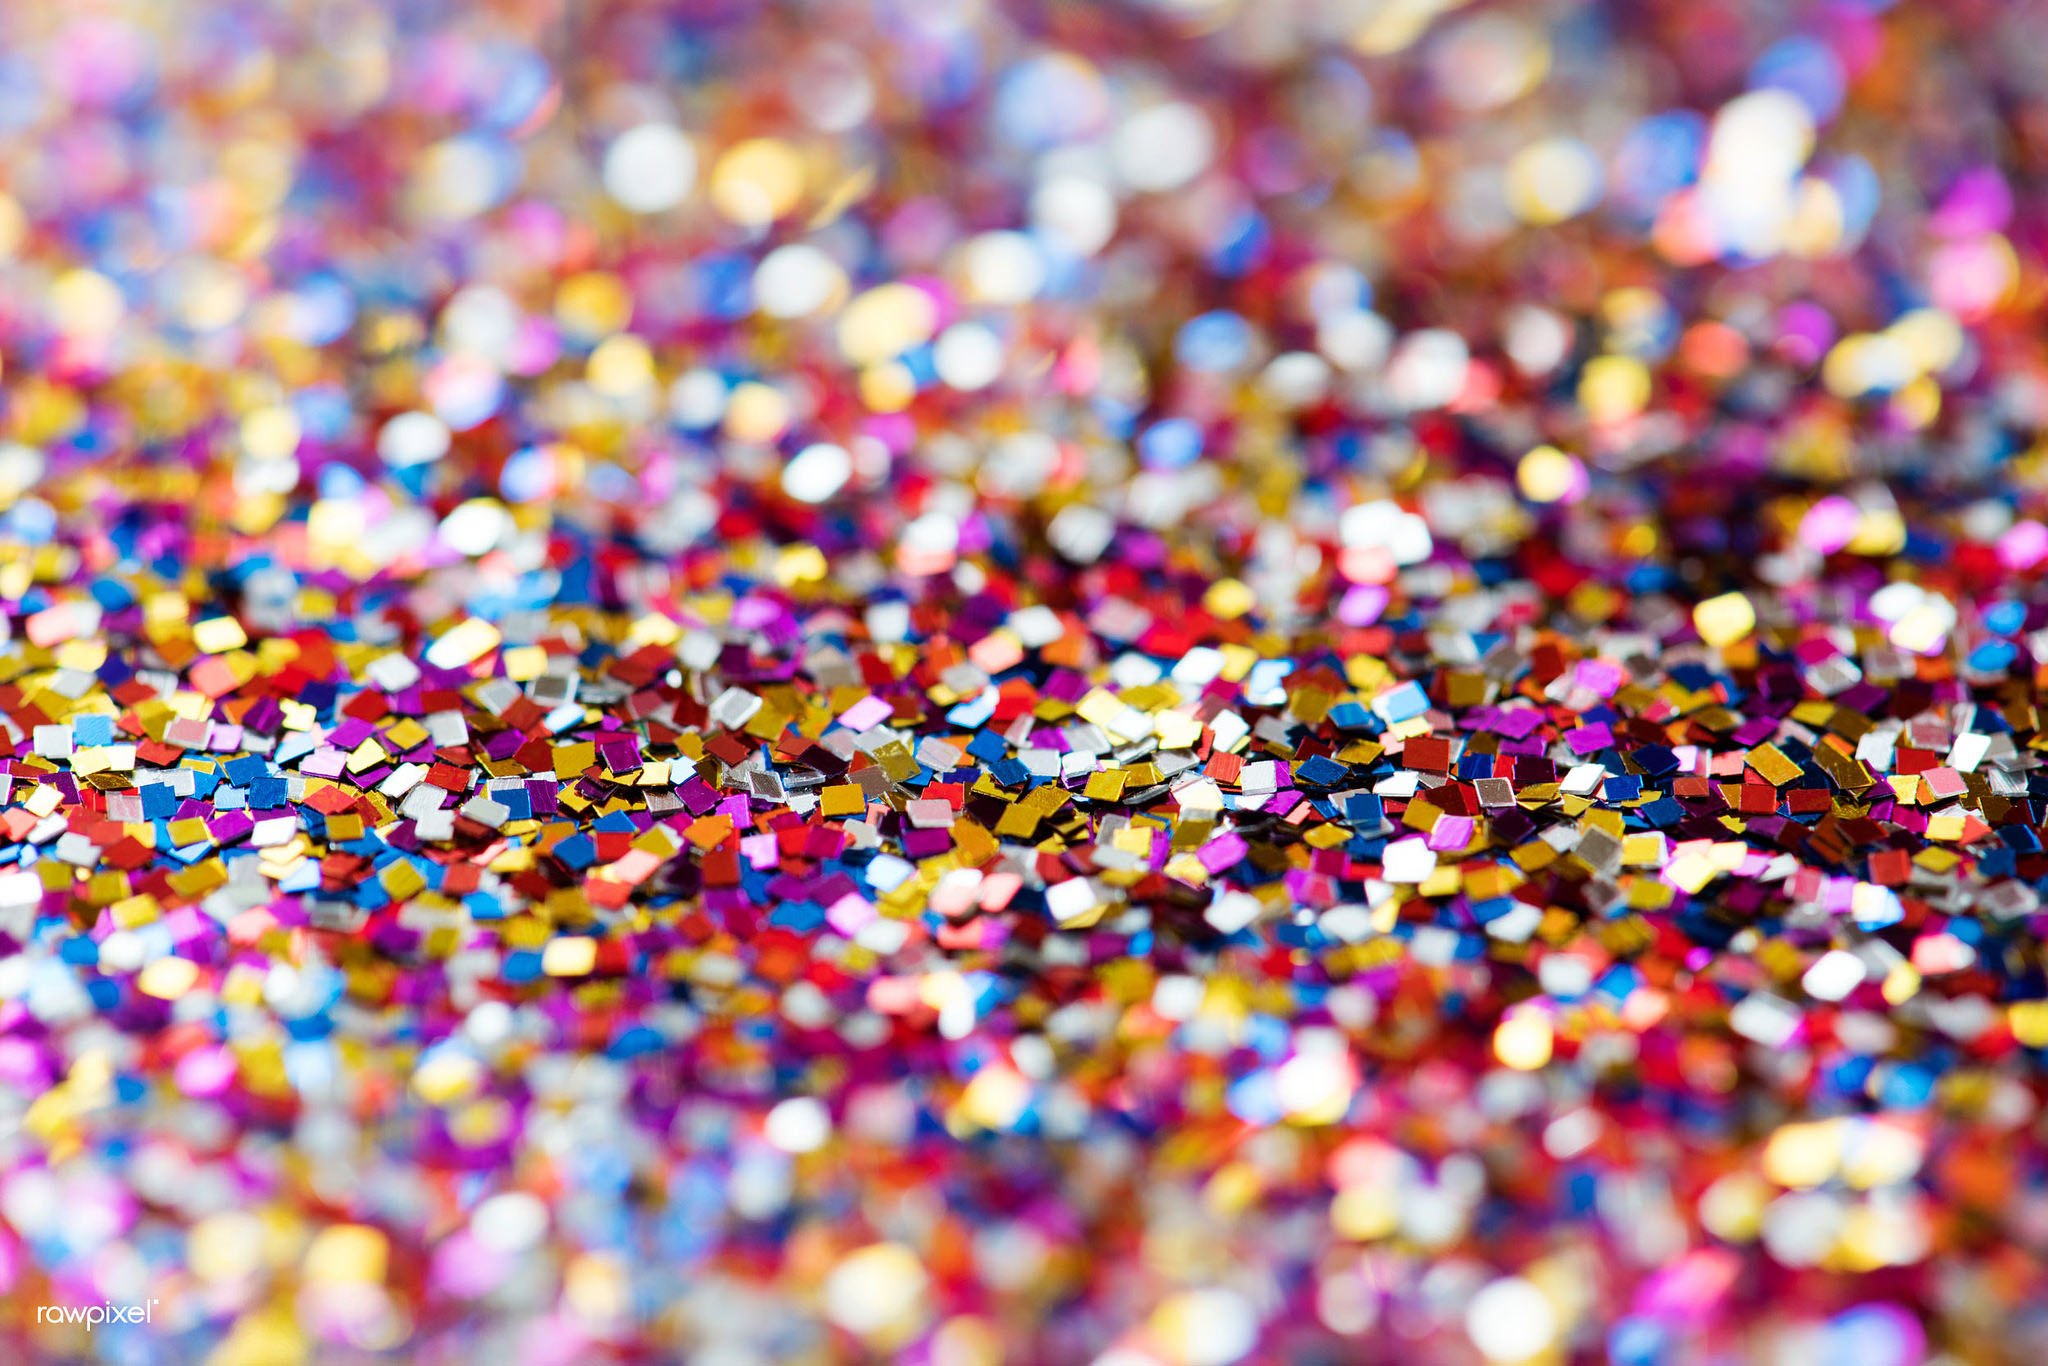 Most glitter is currently made from plastic. (raw pixel.com, Flickr)